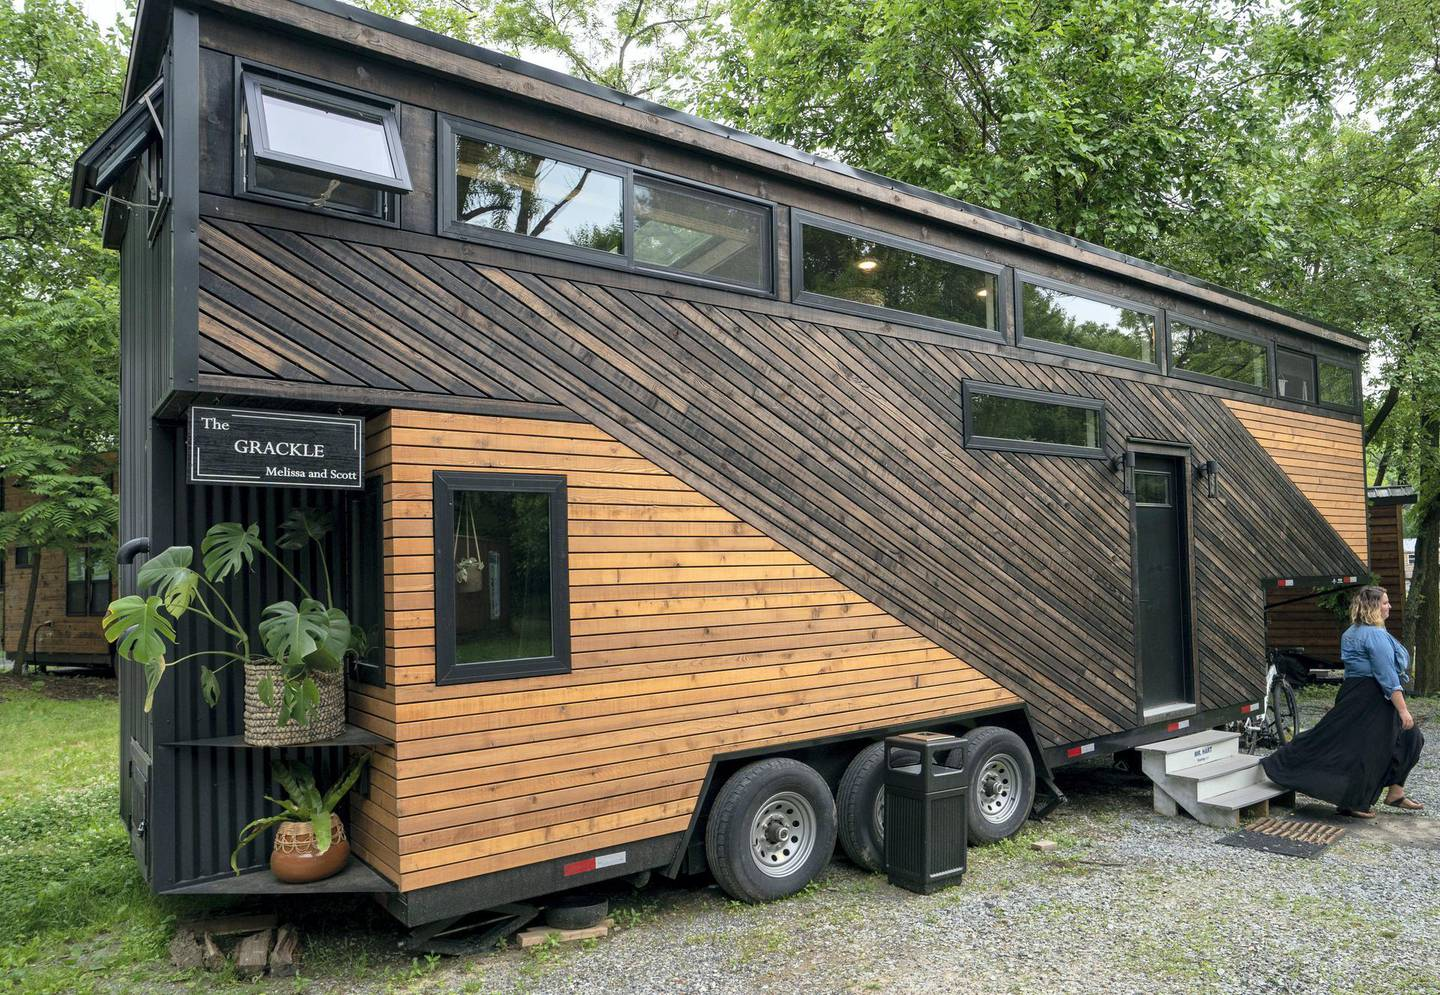 Melissa Meshey walks out of her tiny home called Grackle, built at Liberation Tiny Homes, on June 5, 2019 in Elizabethtown, Pennsylvania. - In a country where bigger is nearly always better -- think supersize fries, giant cars and 10-gallon hats -- more and more Americans are downsizing their living quarters.  Welcome to the world of tiny homes, most of them less than 430 square feet (40 square meters), which savvy buyers are snapping up for their minimalist appeal and much smaller carbon footprints. (Photo by Don Emmert / AFP)